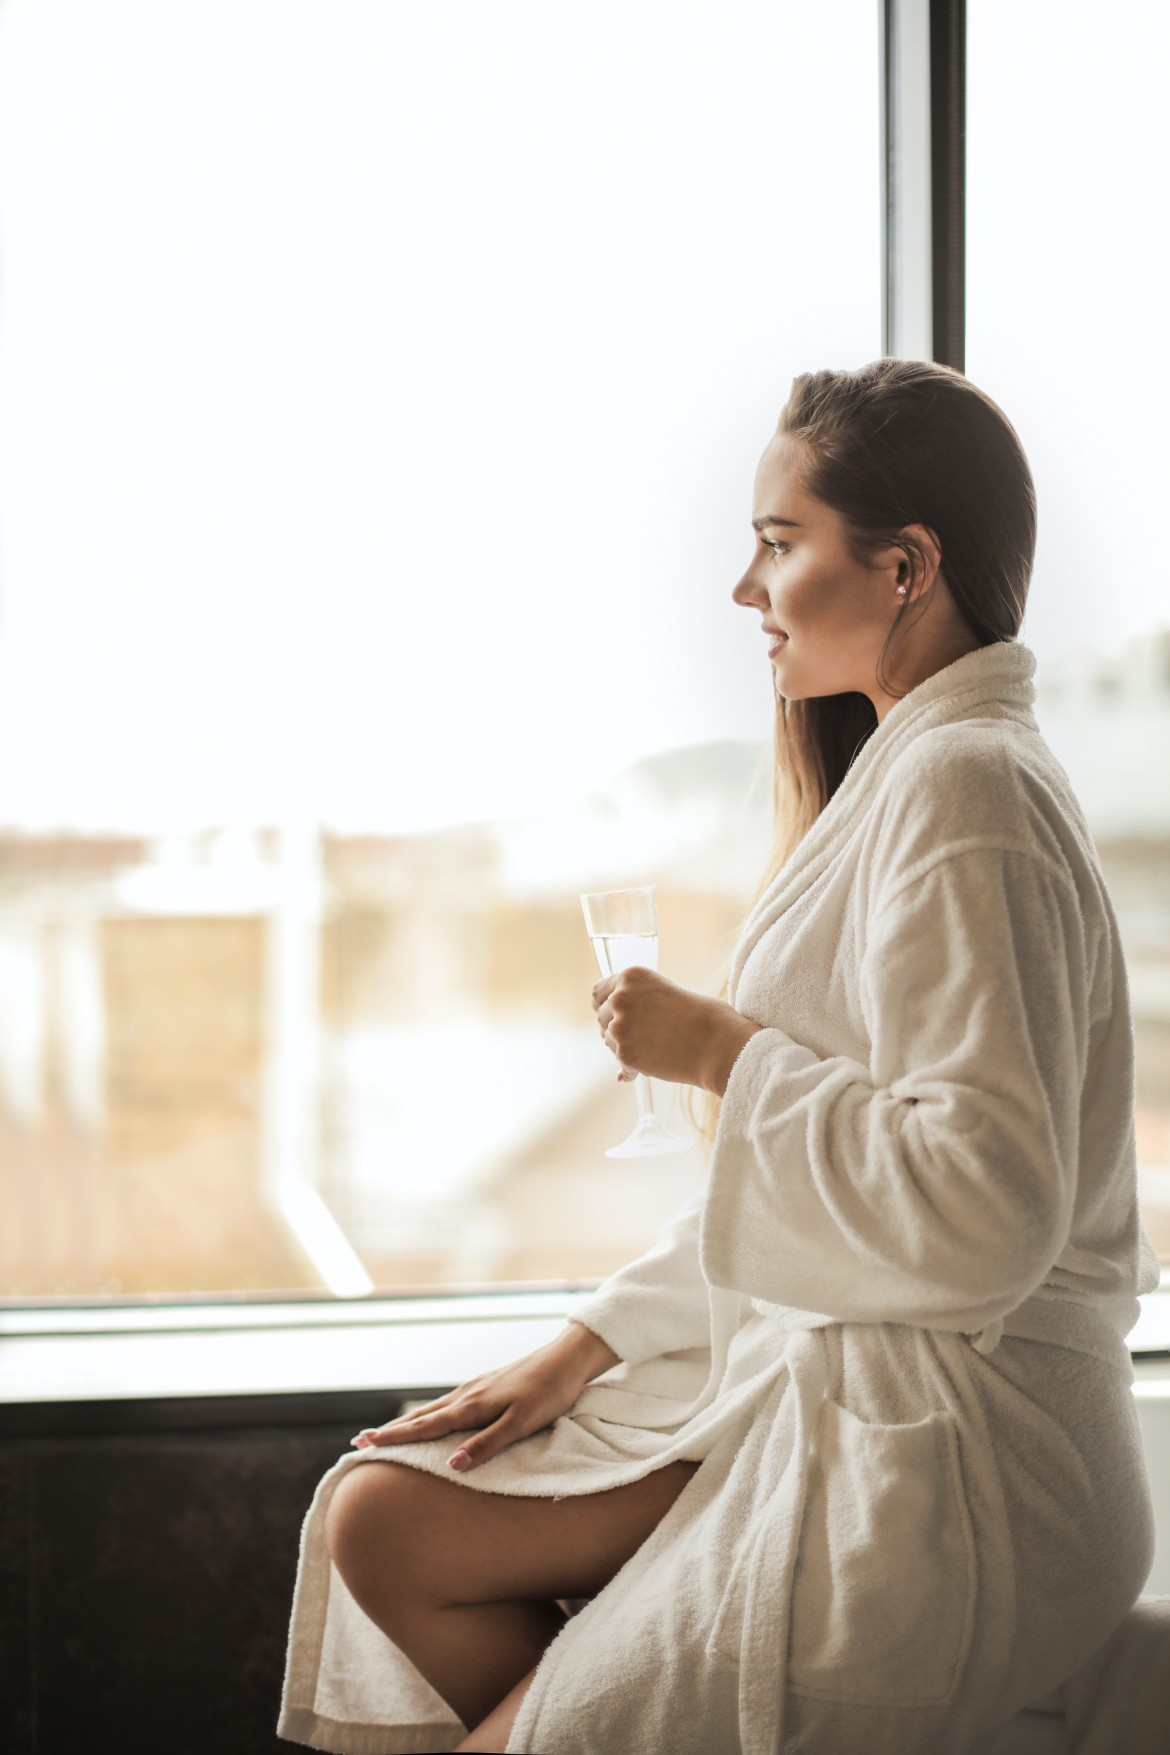 woman drinking alone in white robe gazing out the window